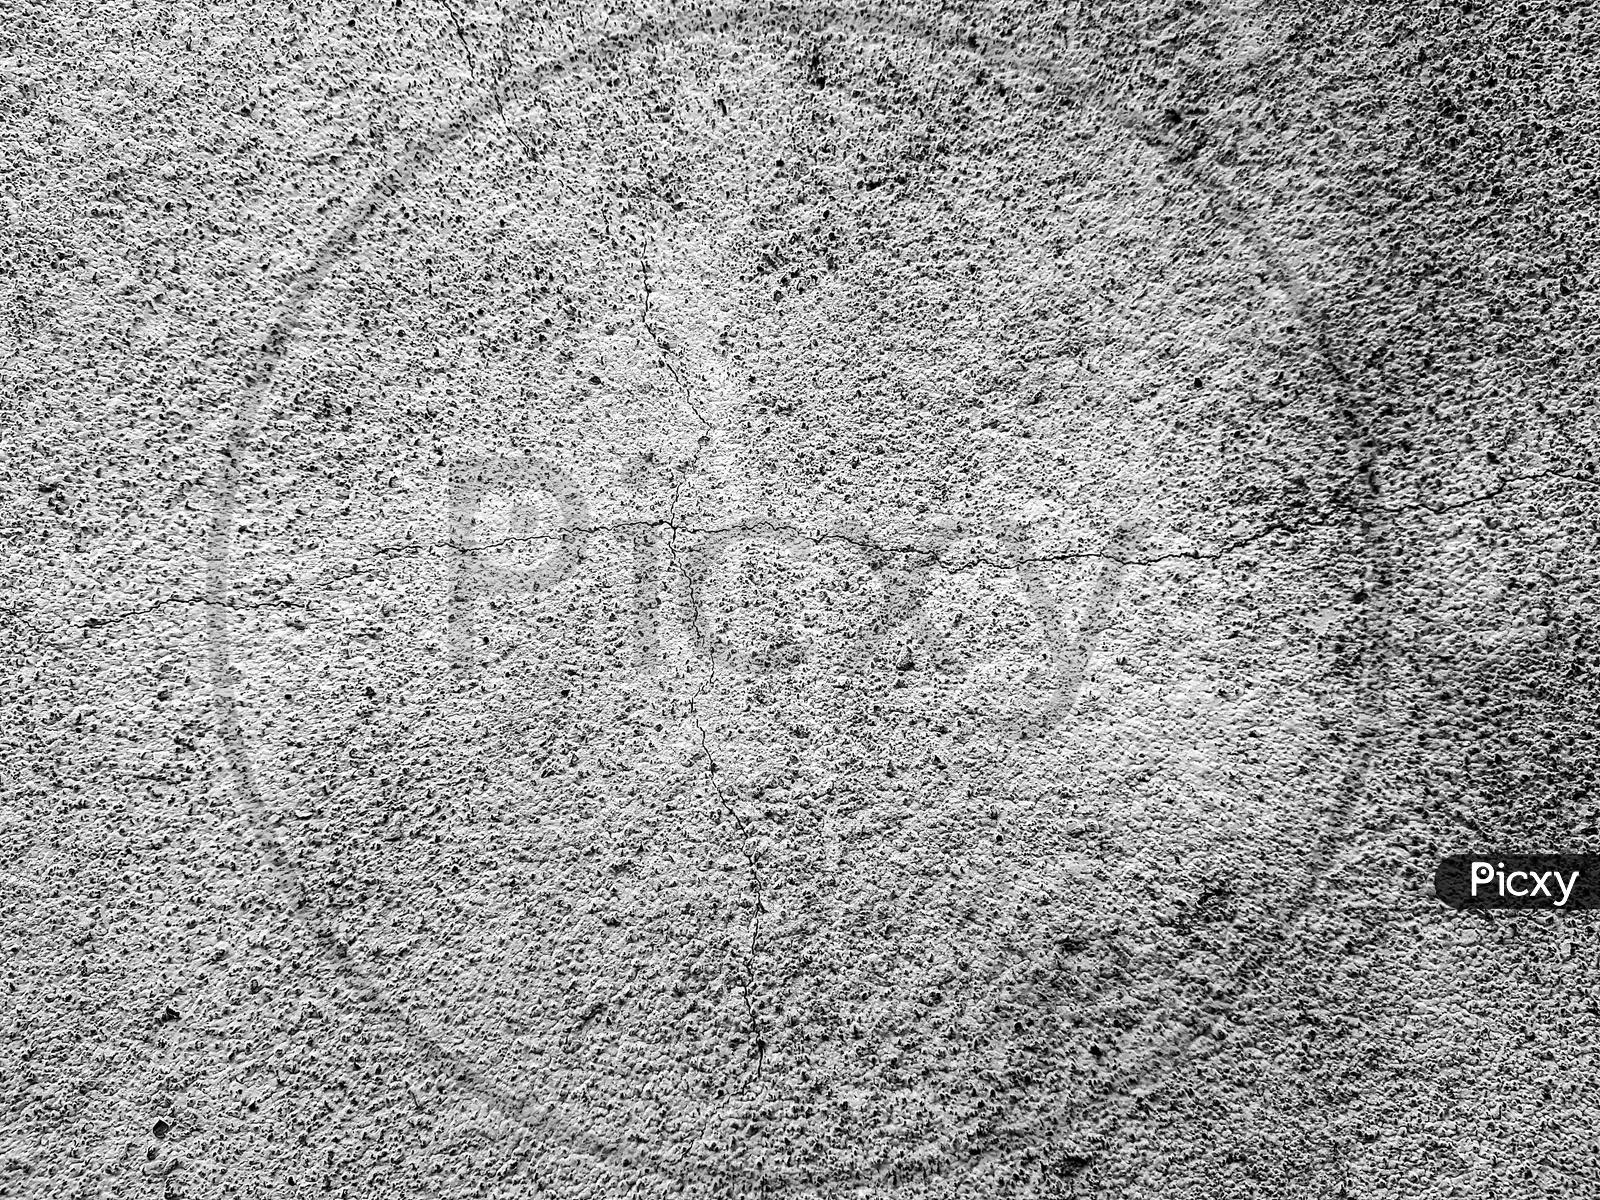 Black And White Rough Cement Wall Texture With Cracks, A Background Pattern